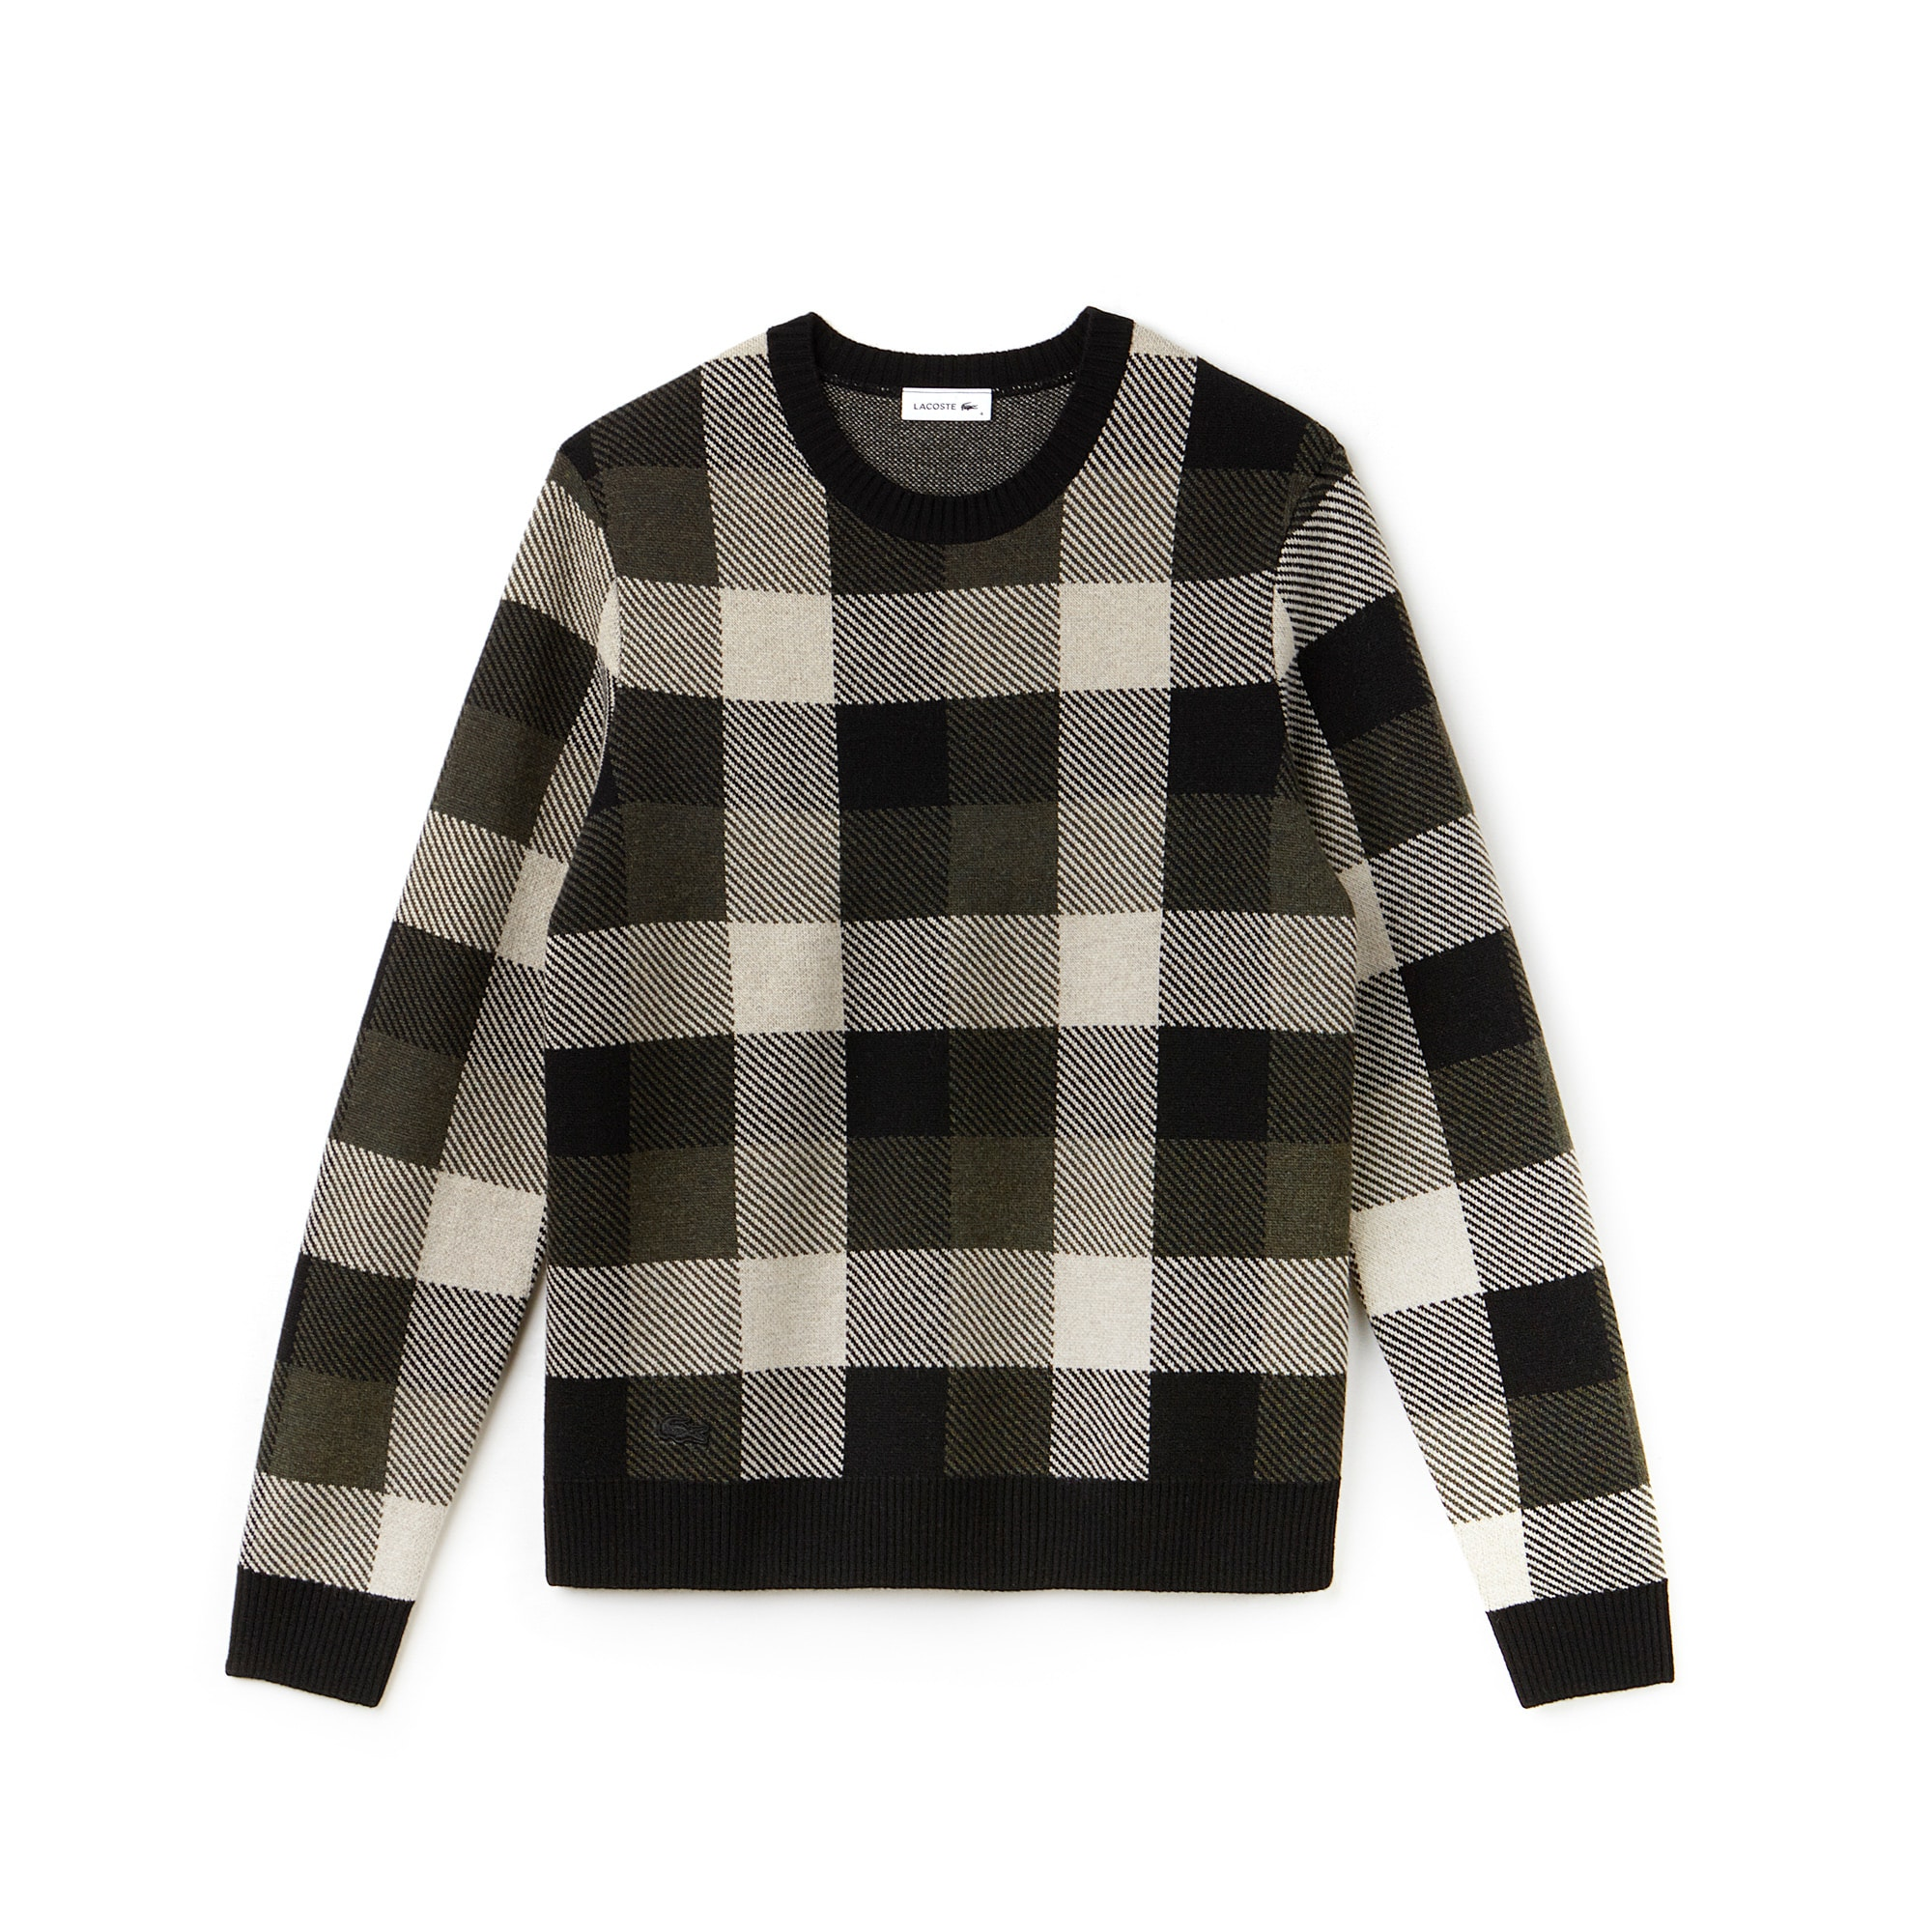 Men's Fashion Show Crew Neck Wool Jacquard Check Sweater